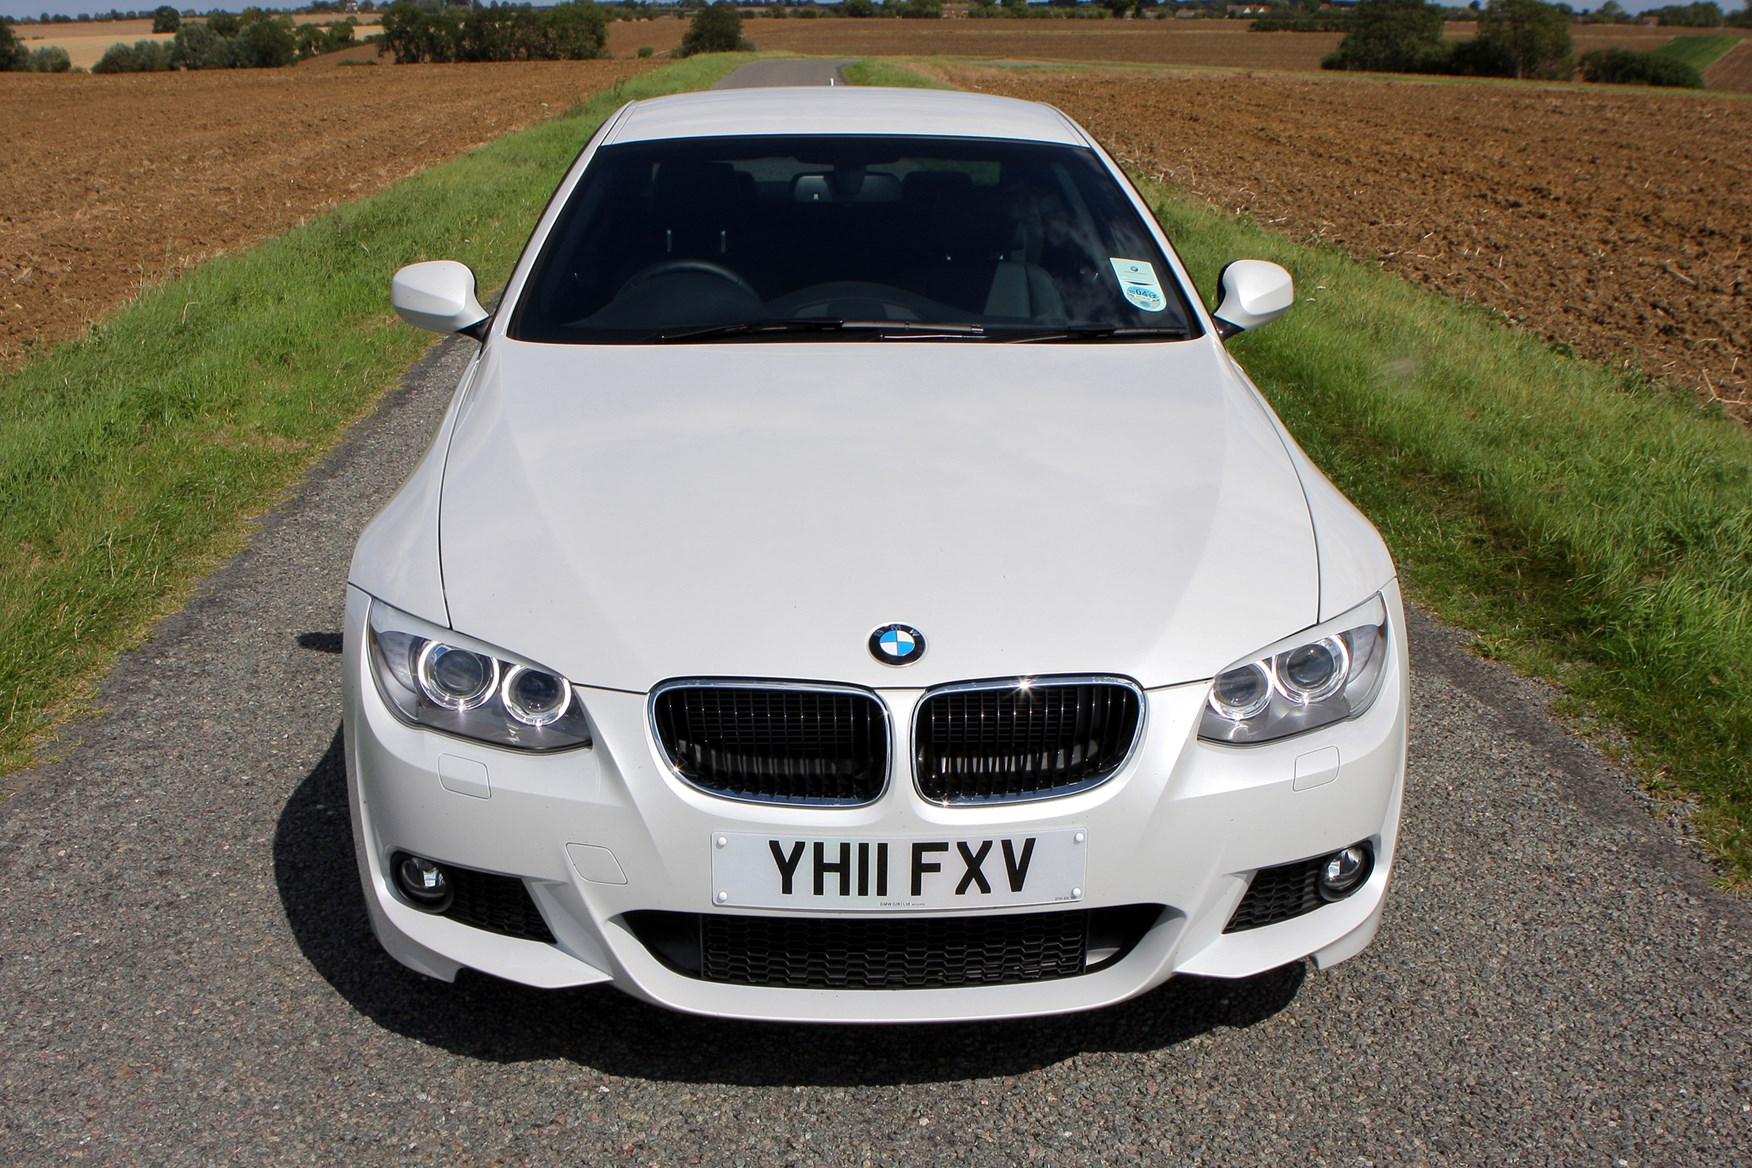 Used BMW 3-Series Coupe (2006 - 2013) Review | Parkers